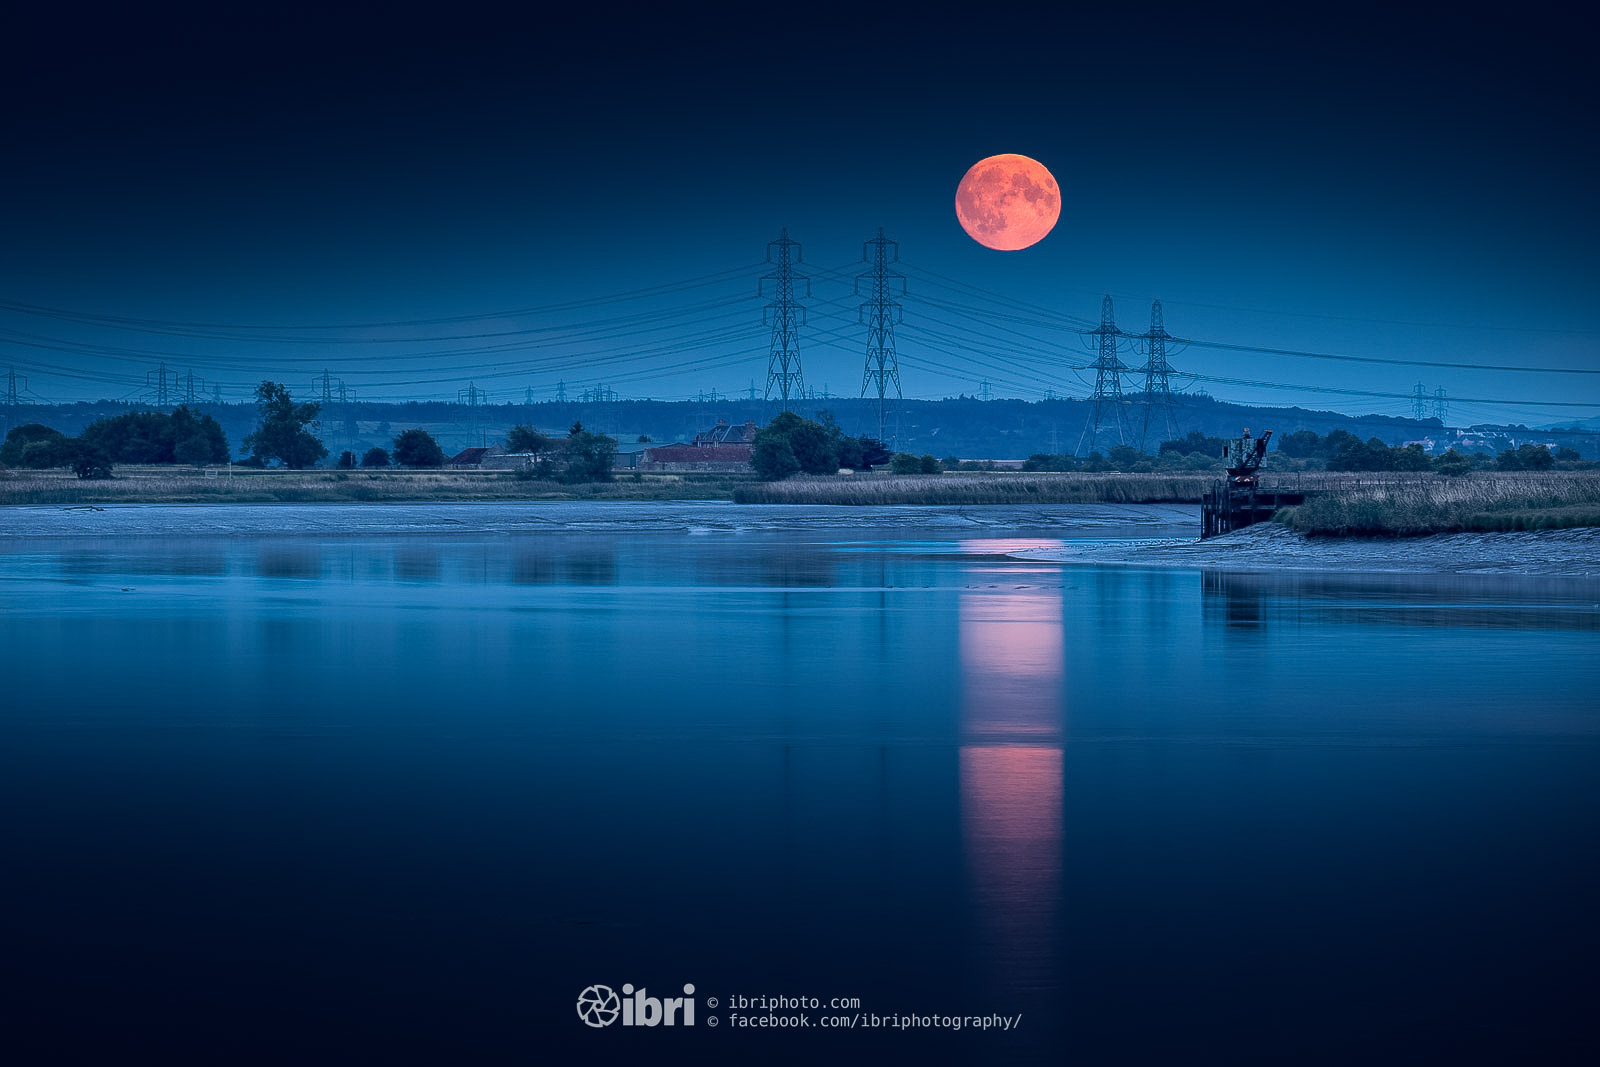 August's Full Moon. The Sturgeon moon ('cause it's apparently easier to net one around this time*). Didn't think it would show, but it sneaked out from the clouds as it rose then promptly sneaked back behind them shortly after. Looking towards the pylons across the River from the harbour.